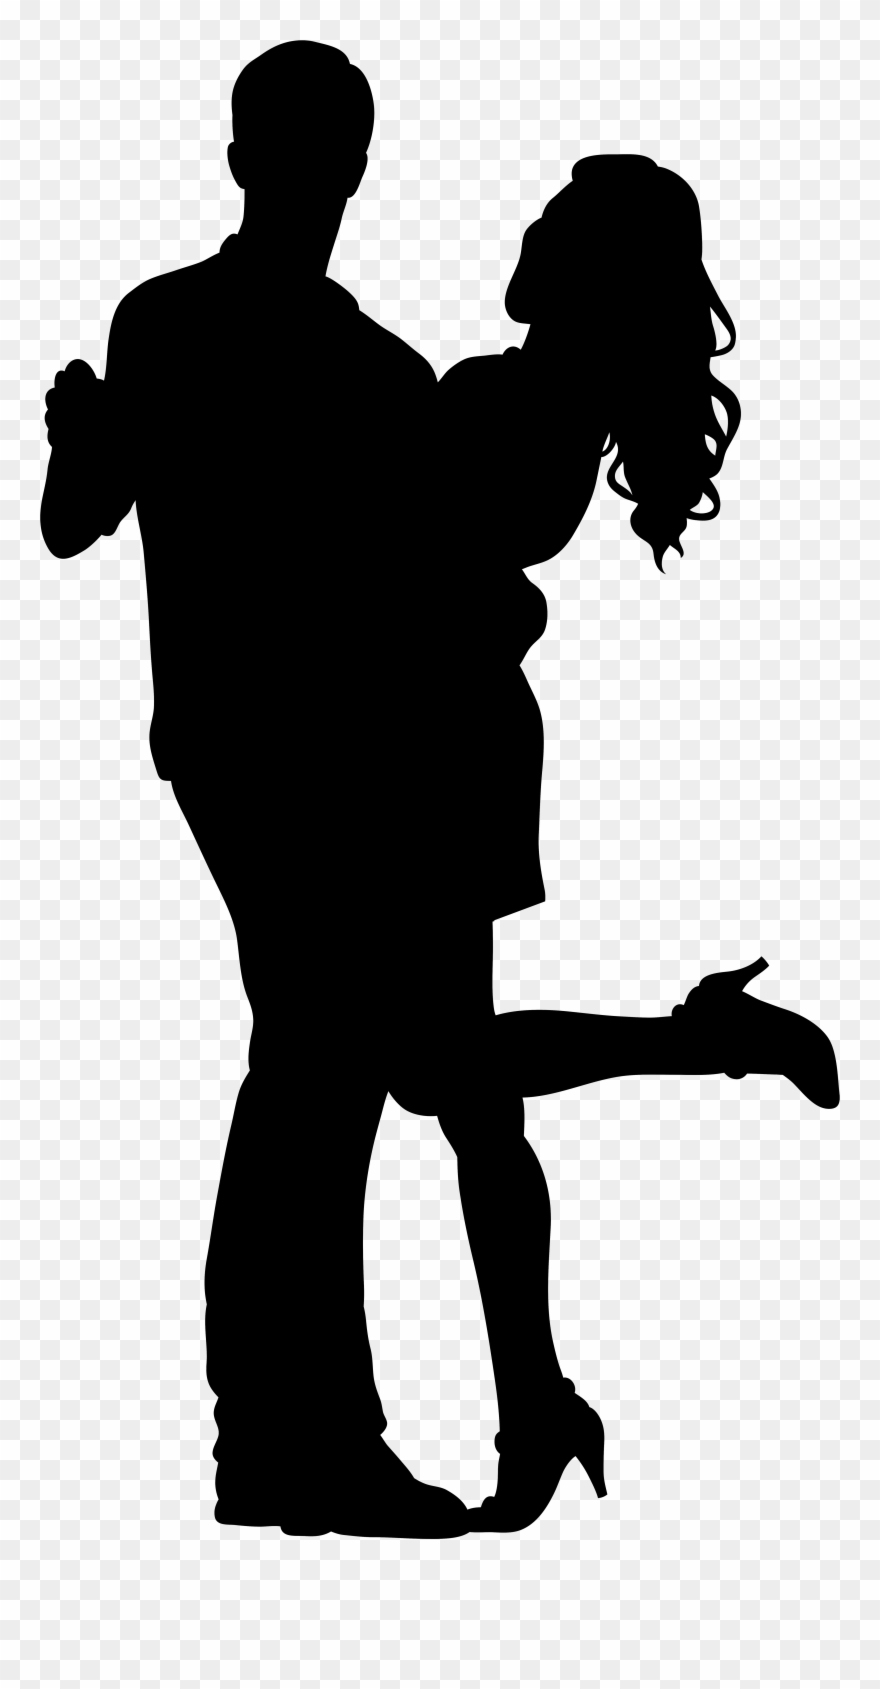 Dancing couple silhouette clipart jpg freeuse library Couple Silhouette Transparent Background Clipart (#6889) - PinClipart jpg freeuse library